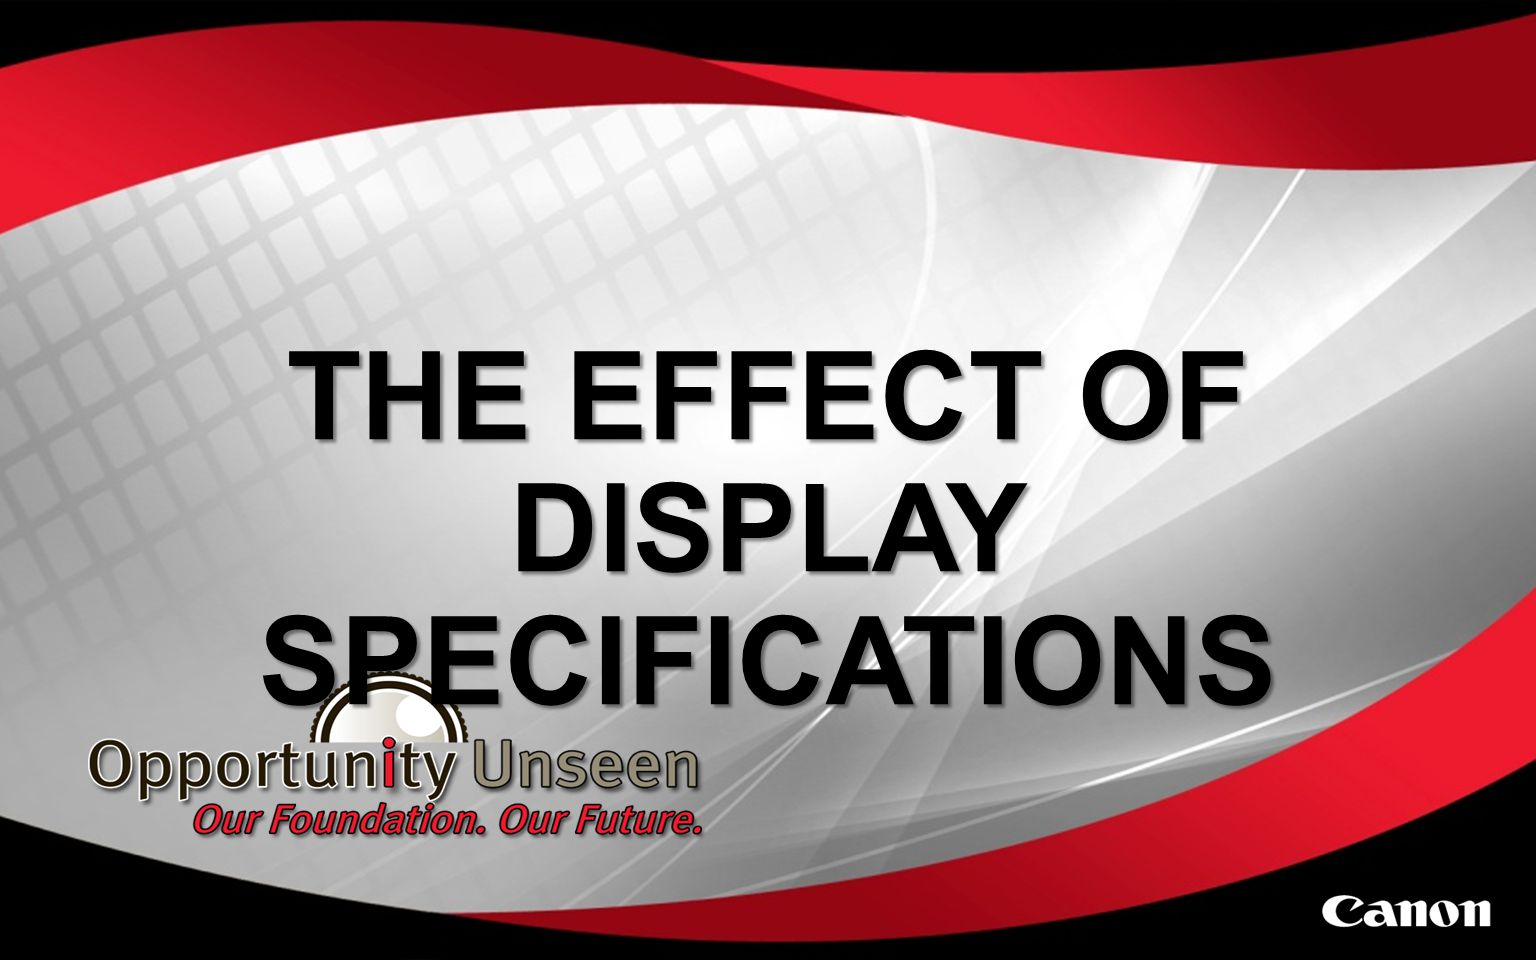 THE EFFECT OF DISPLAY SPECIFICATIONS